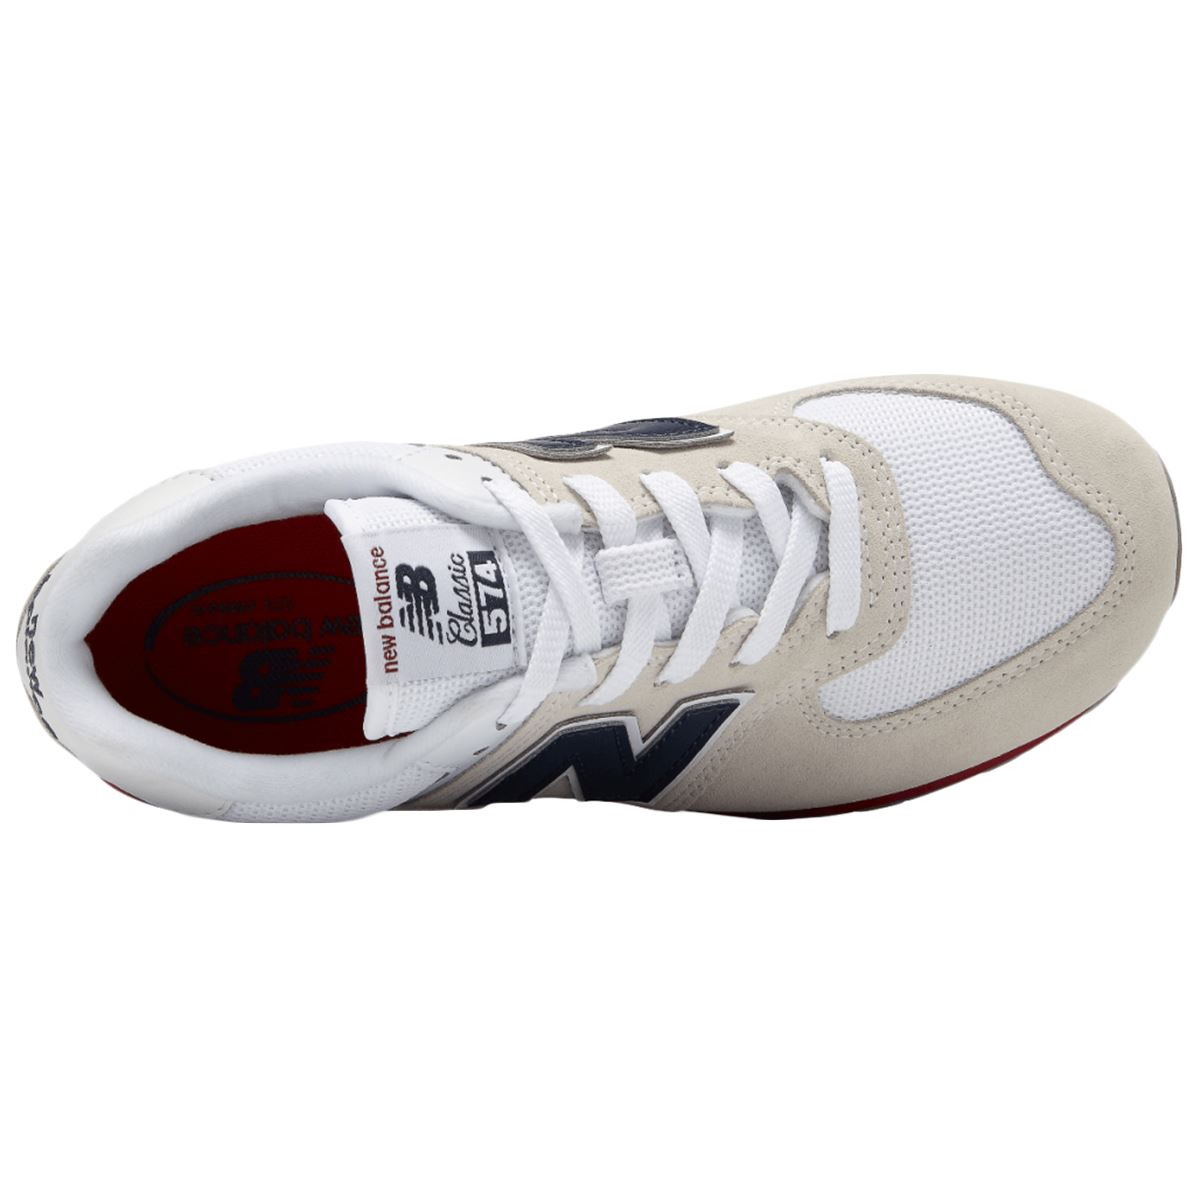 New-Balance-GC574-Suede-Mesh-Low-Top-Lace-Up-Running-Shoes-Youth-Trainers